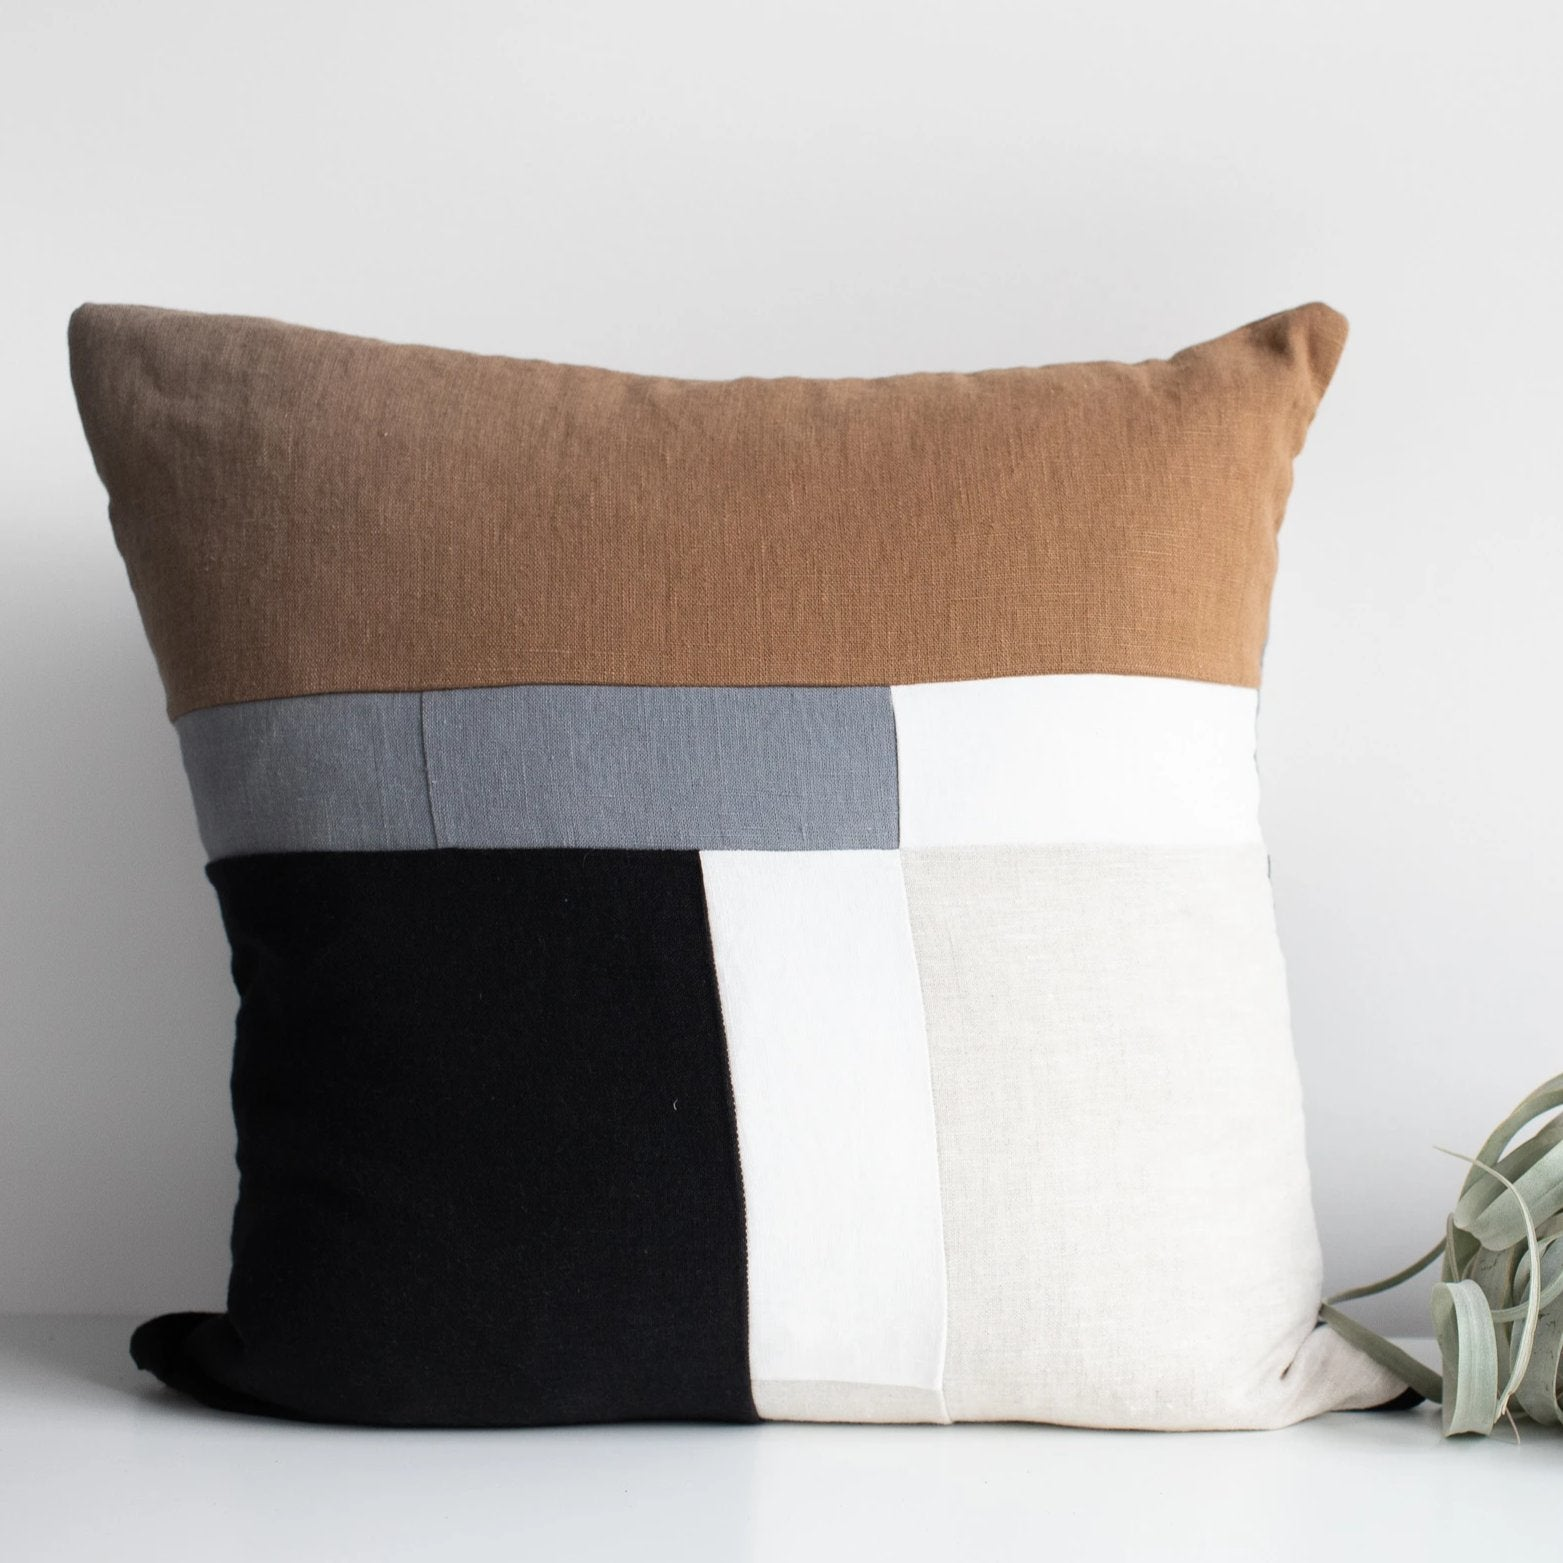 Mallow Soft Goods: Quilted Pillow